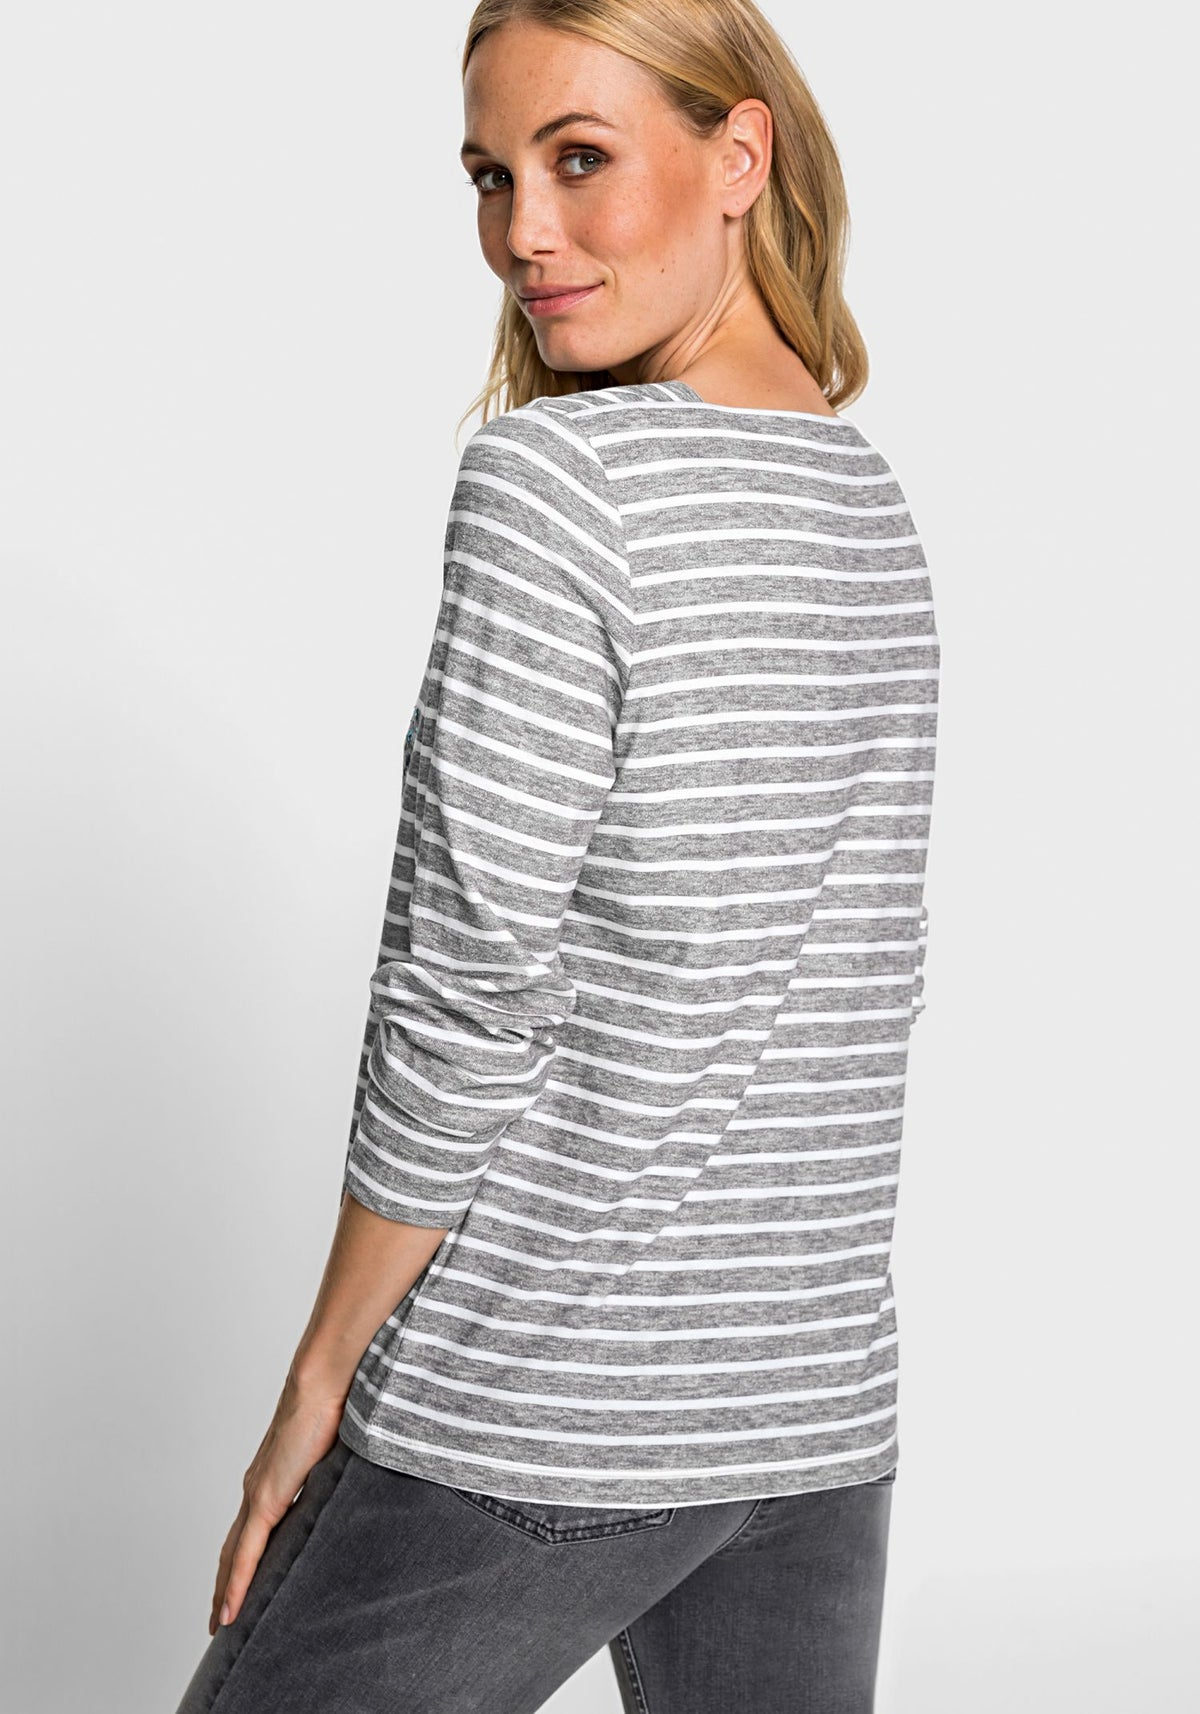 Long Sleeve Striped T-Shirt with Abstract Rhinestone Dandelion Print (Hannah Fit)